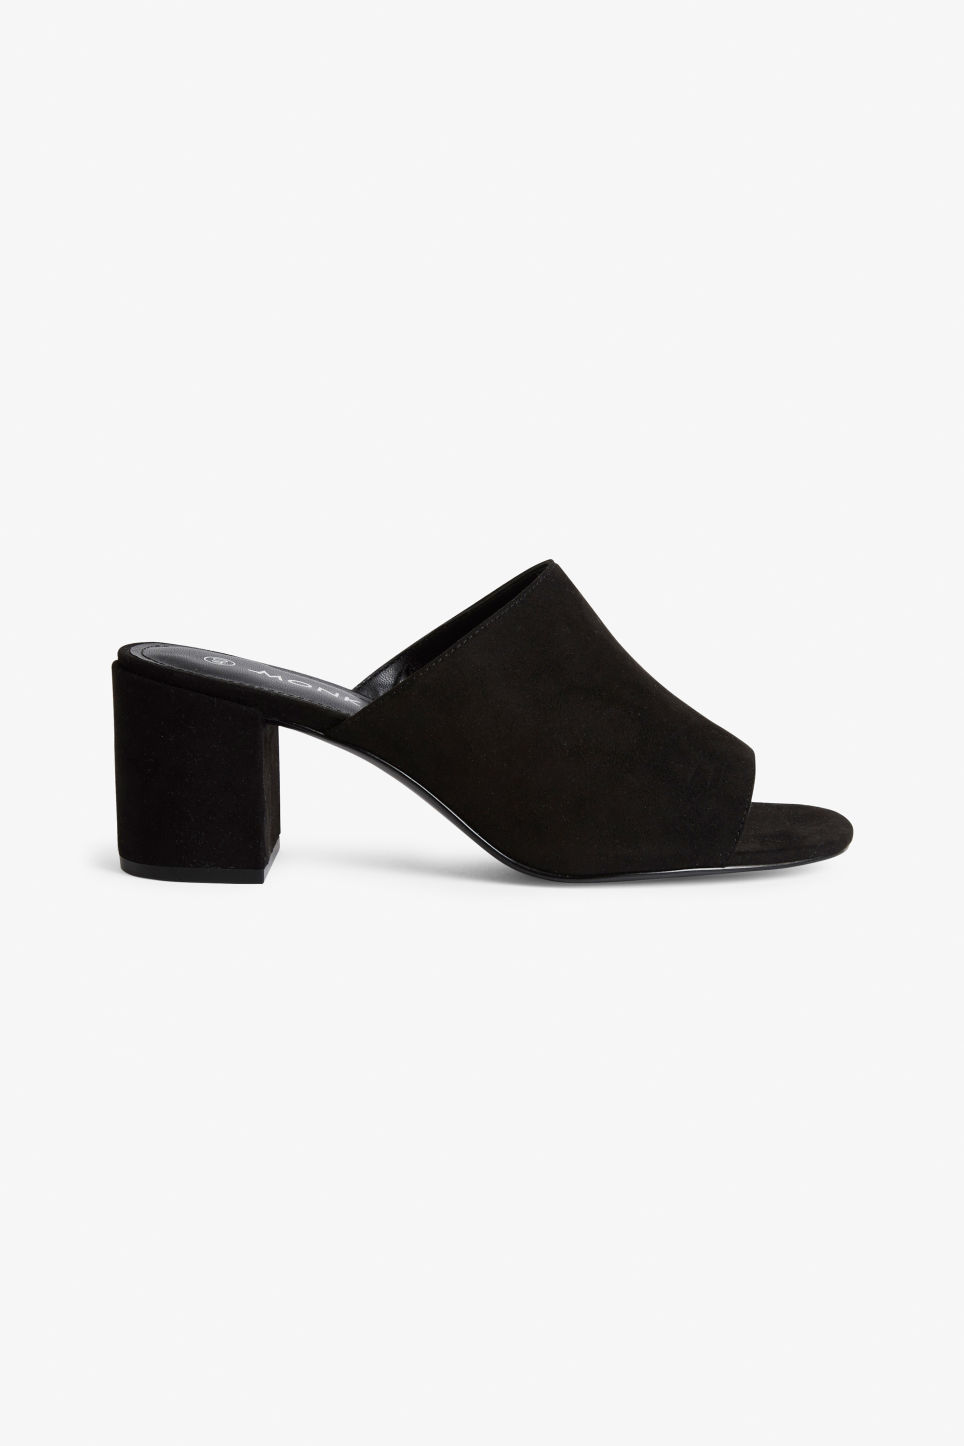 Detailed image of Monki faux suede mule sandals in black